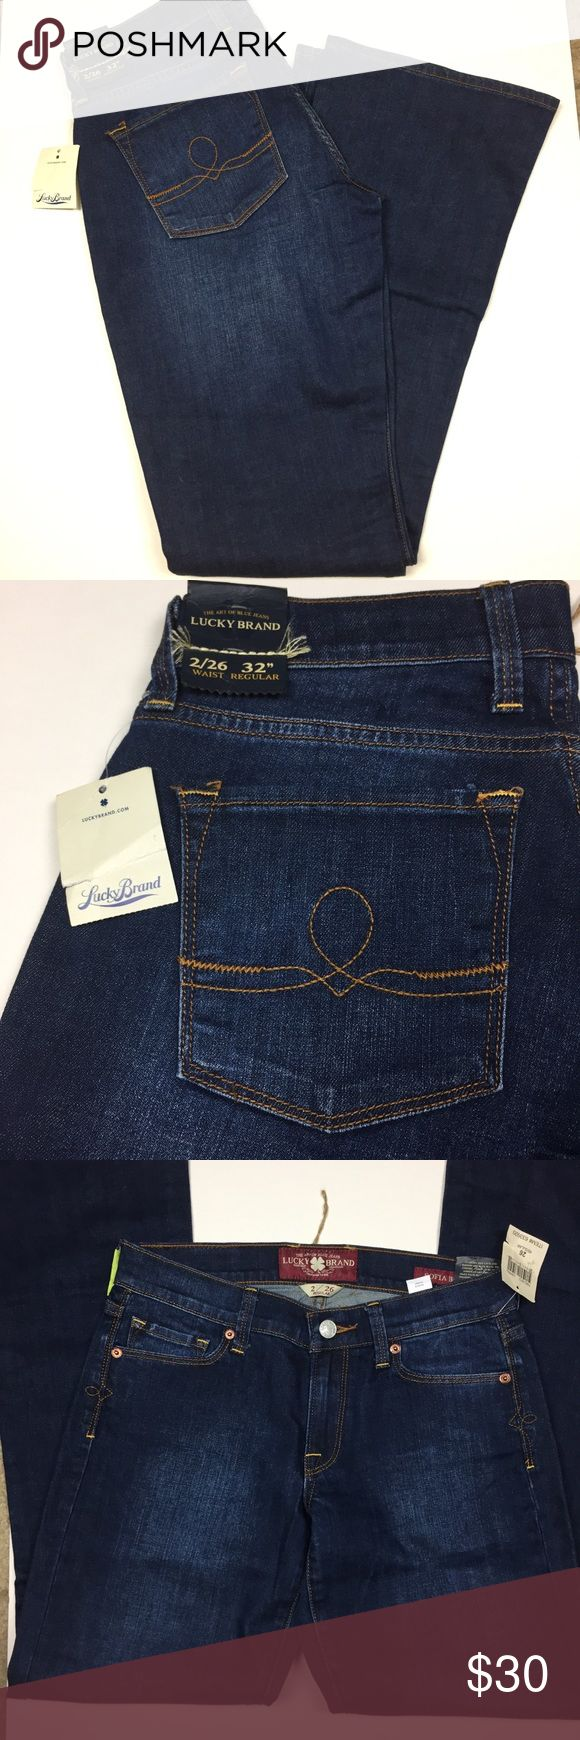 Lucky brand jeans women's size 26/32 regular NWT Regular fit women's lucky brand jeans size 26/32 NEW with tags. Outseam is 32, inseam 31in, waist 26in. These blue jeans have no flaws. Lucky Brand Jeans Boot Cut